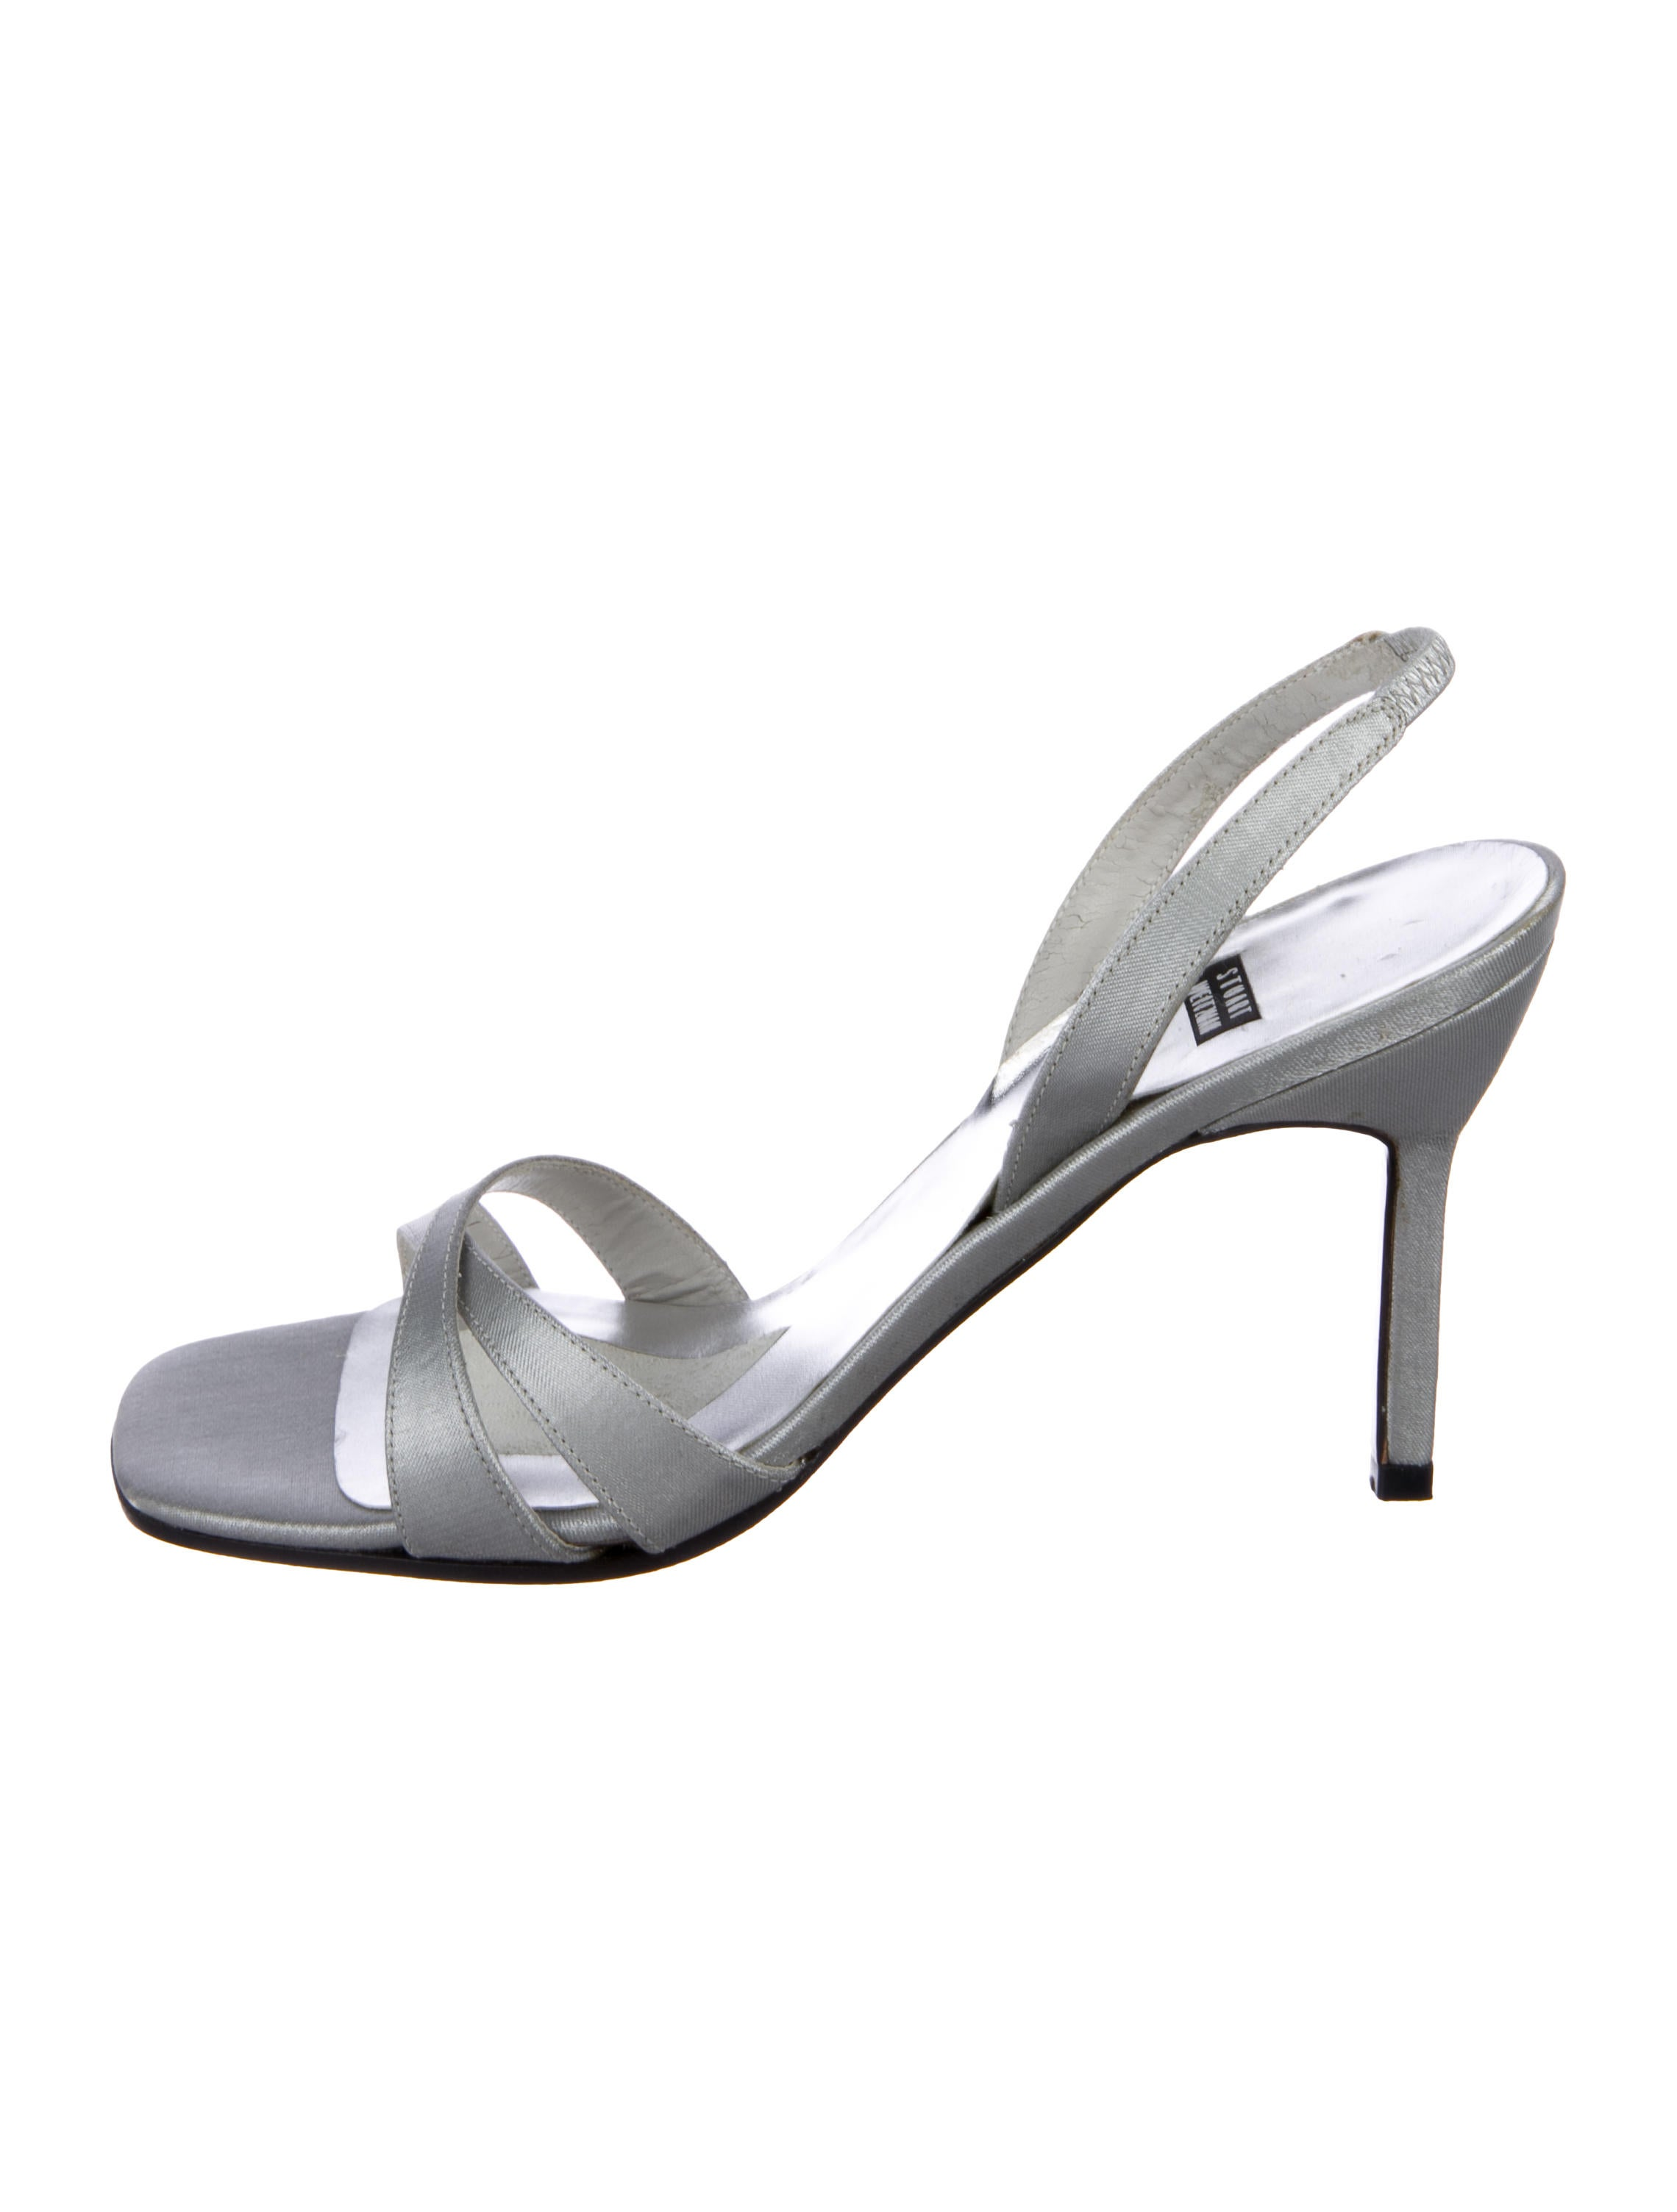 cost cheap sale popular Stuart Weitzman Satin Crossover Sandals free shipping lowest price cheap 2015 7fhJPU6S